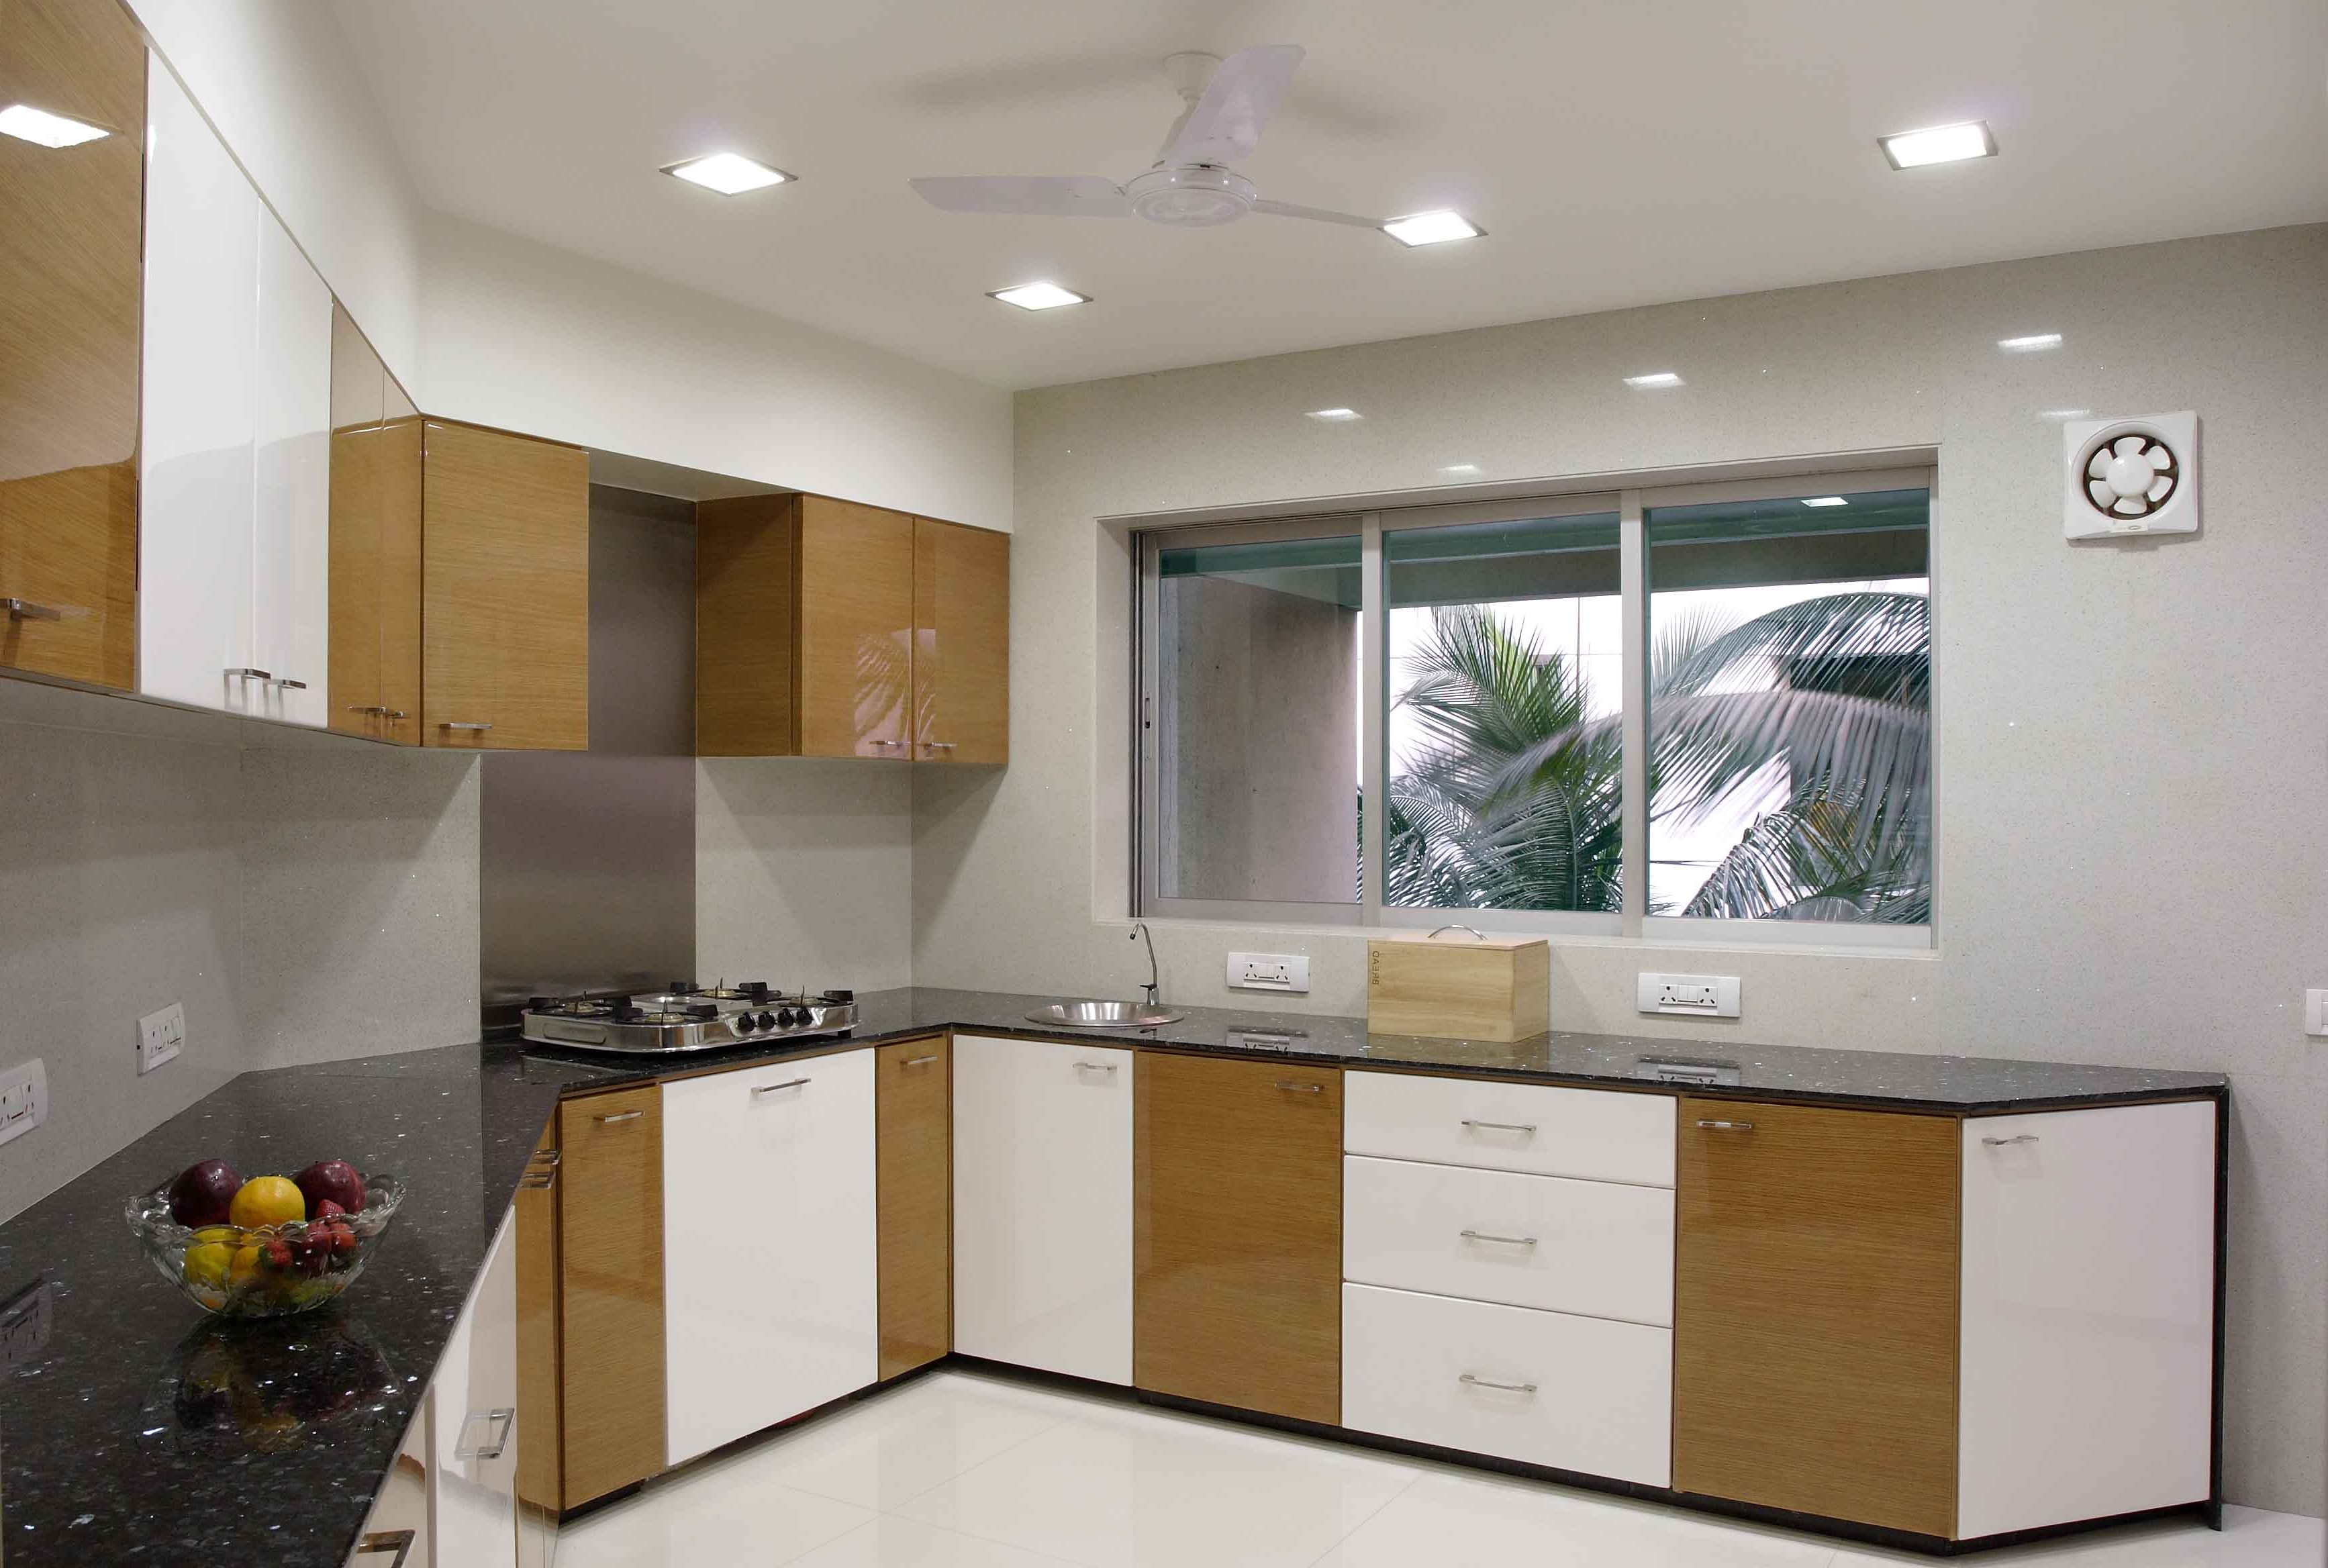 Attractive Cost Of Modular Kitchen Pictures Of Modular Kitchen Small Big Indian Kitchen  Designs L Shaped Modular